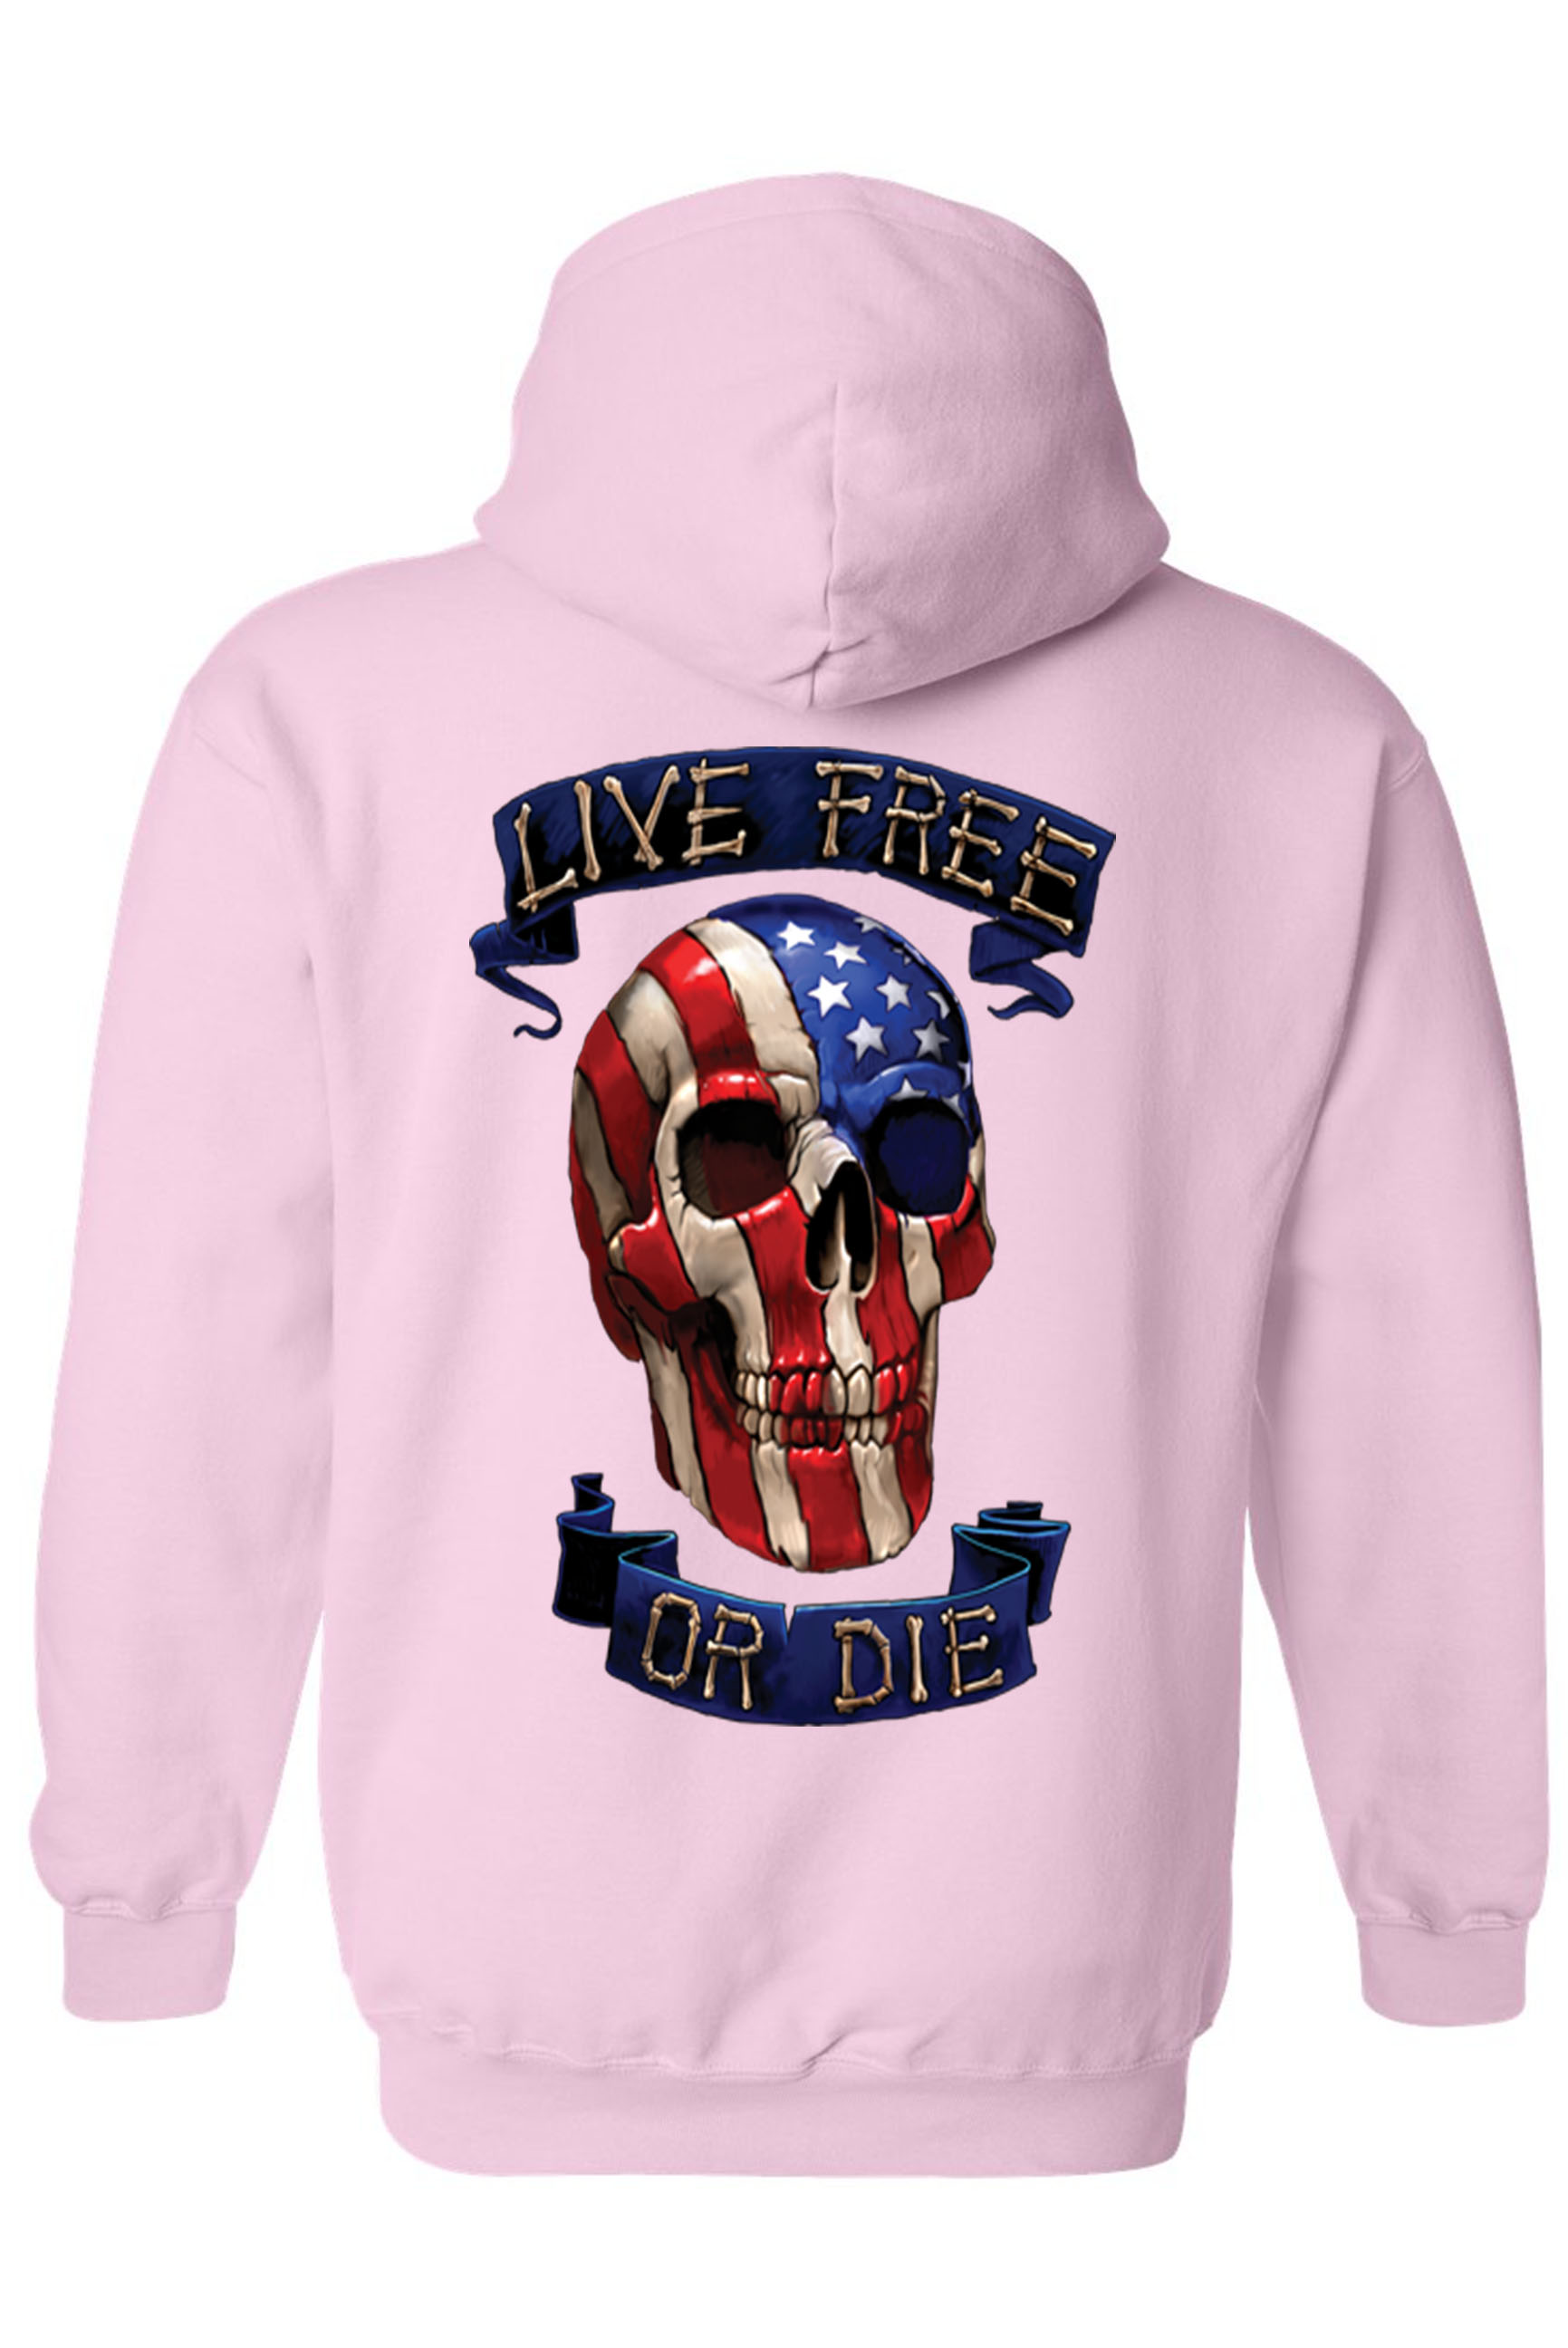 Unisex Zip Up Hoodie USA Flag Skull Live Free or Die